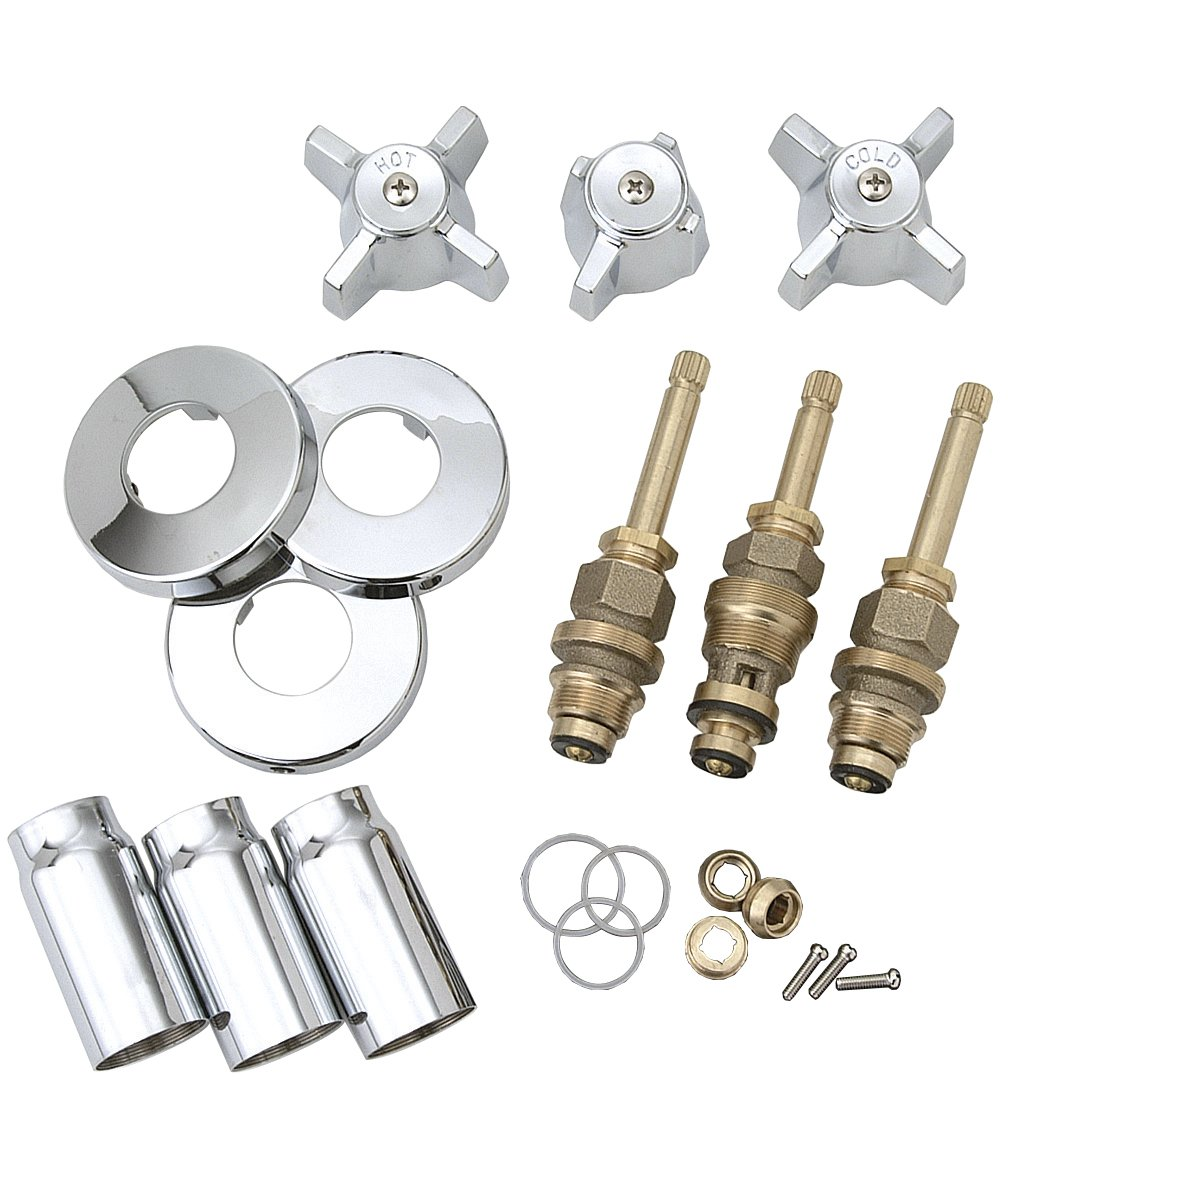 Amazon.com: BrassCraft SK0336 Tub and Shower Faucet Rebuild Kit for ...